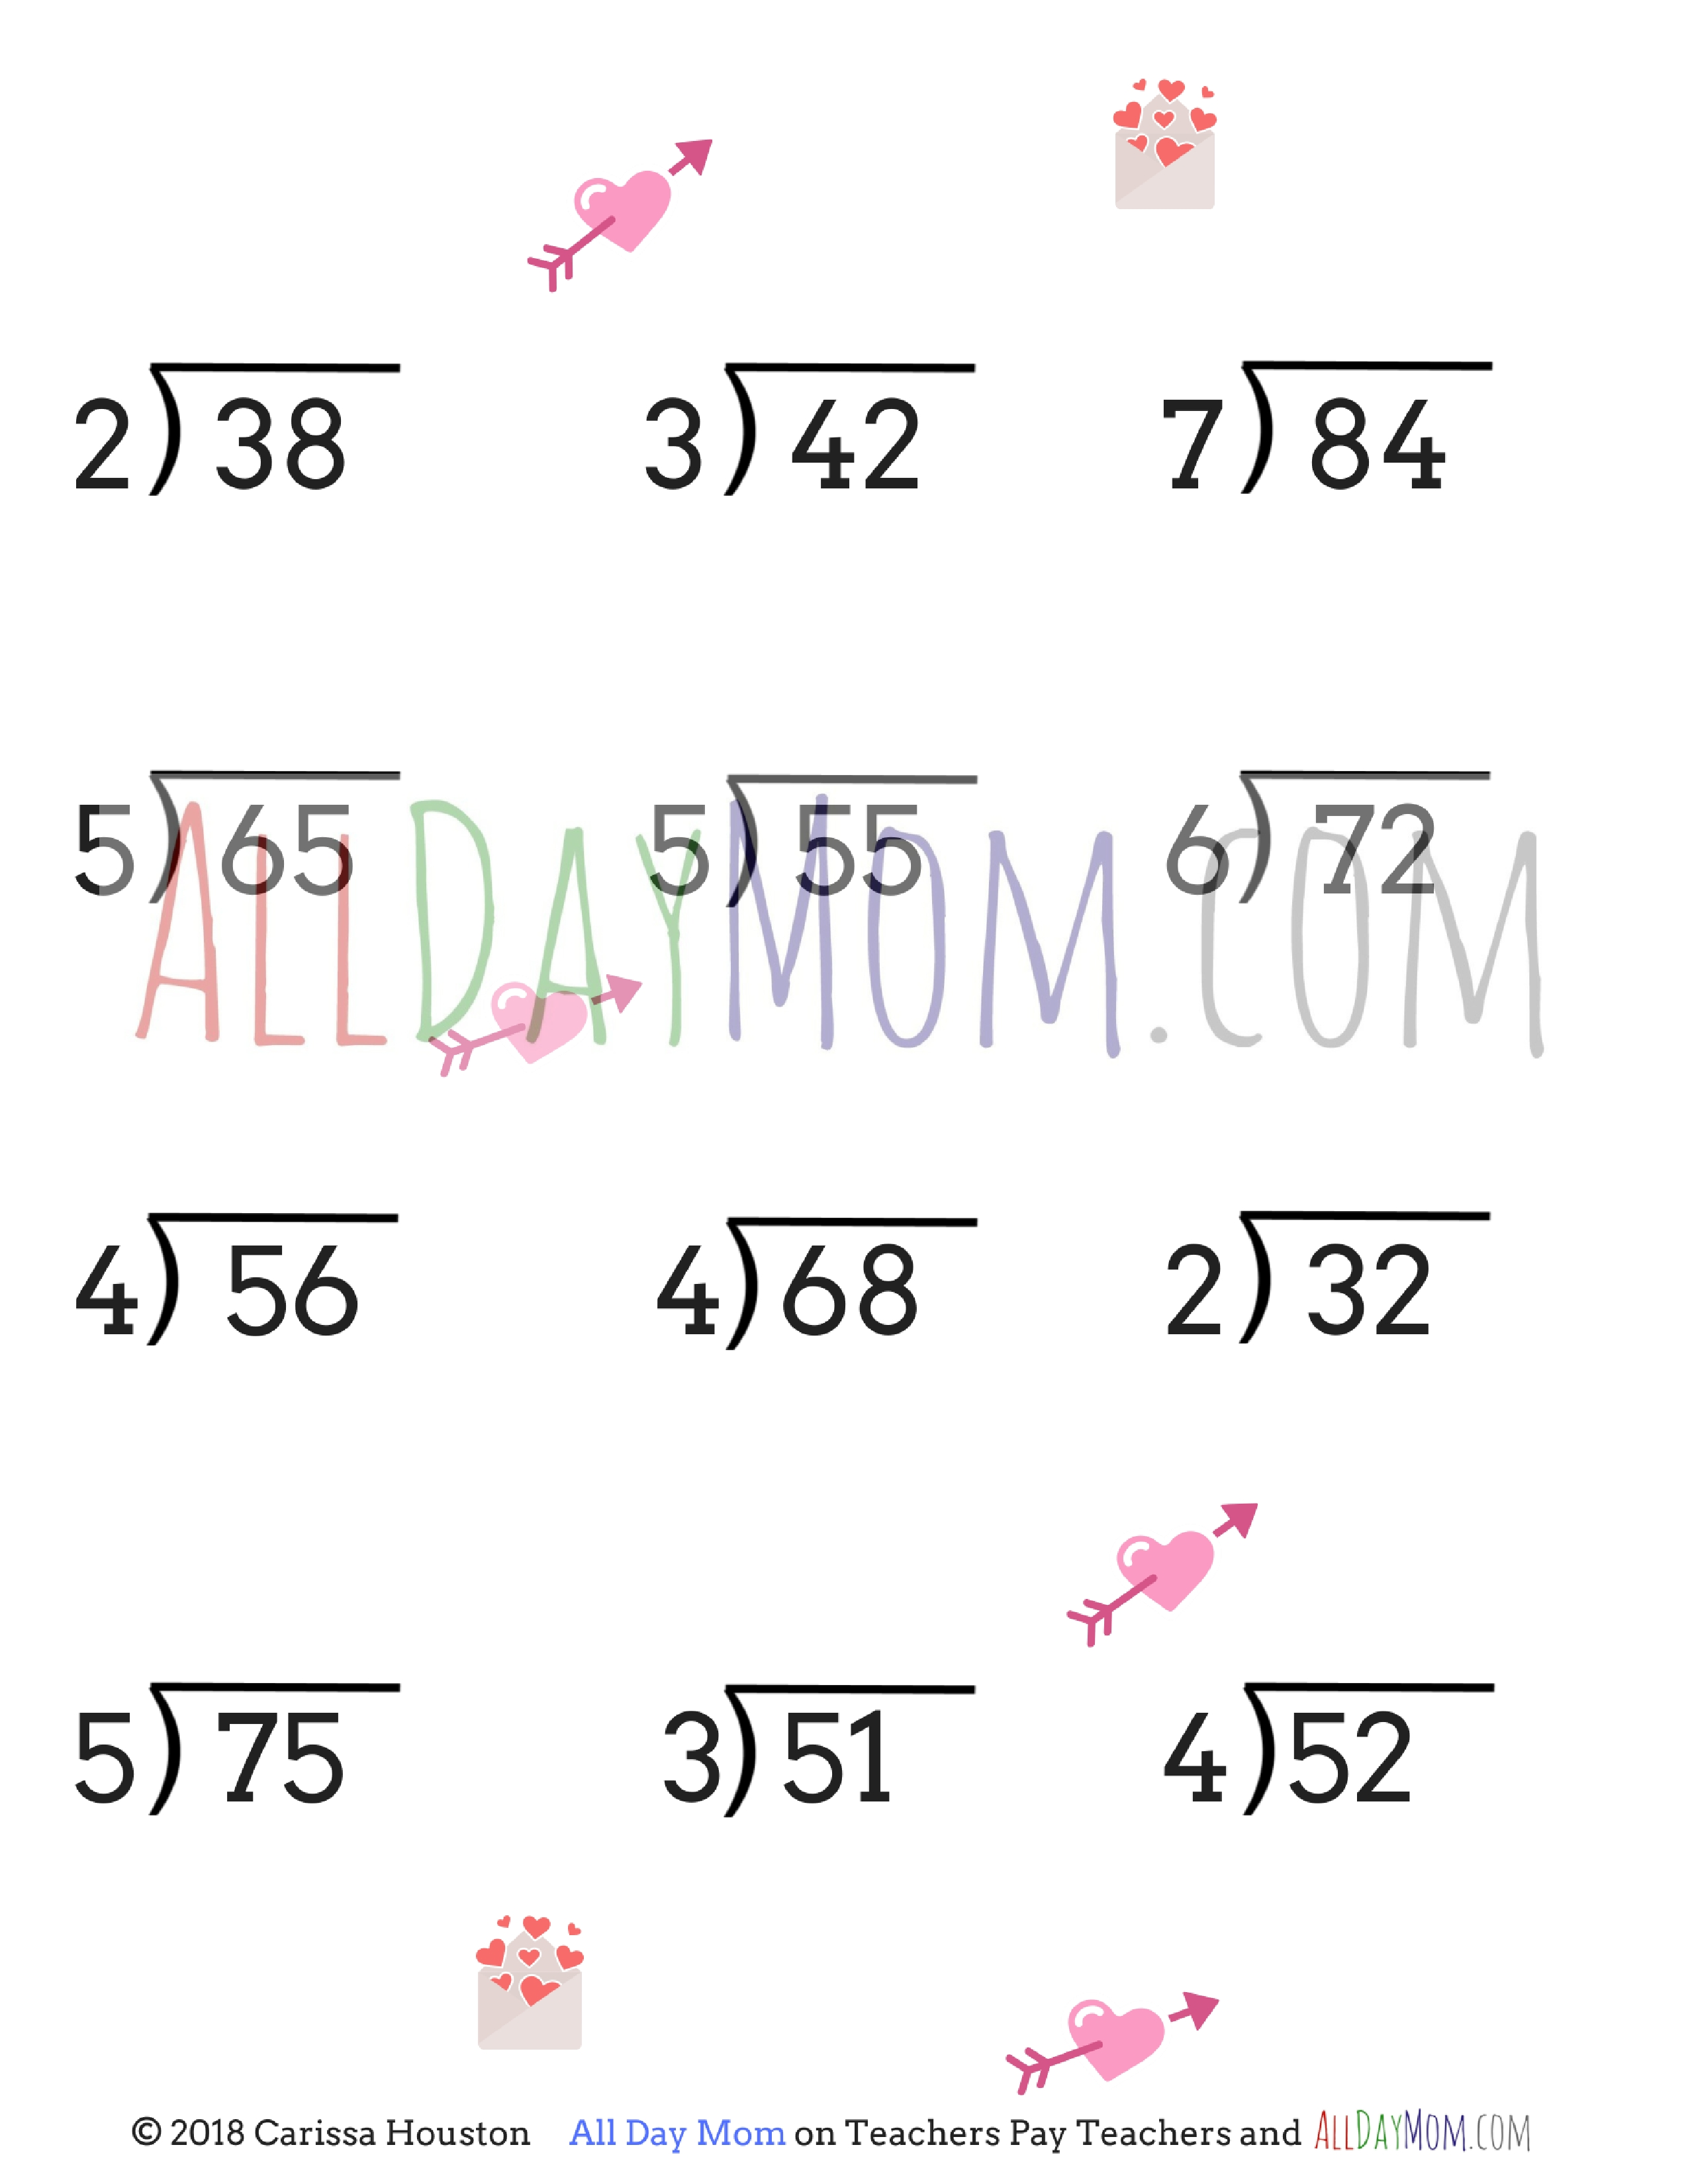 Free printable Valentine's Day math worksheets! on